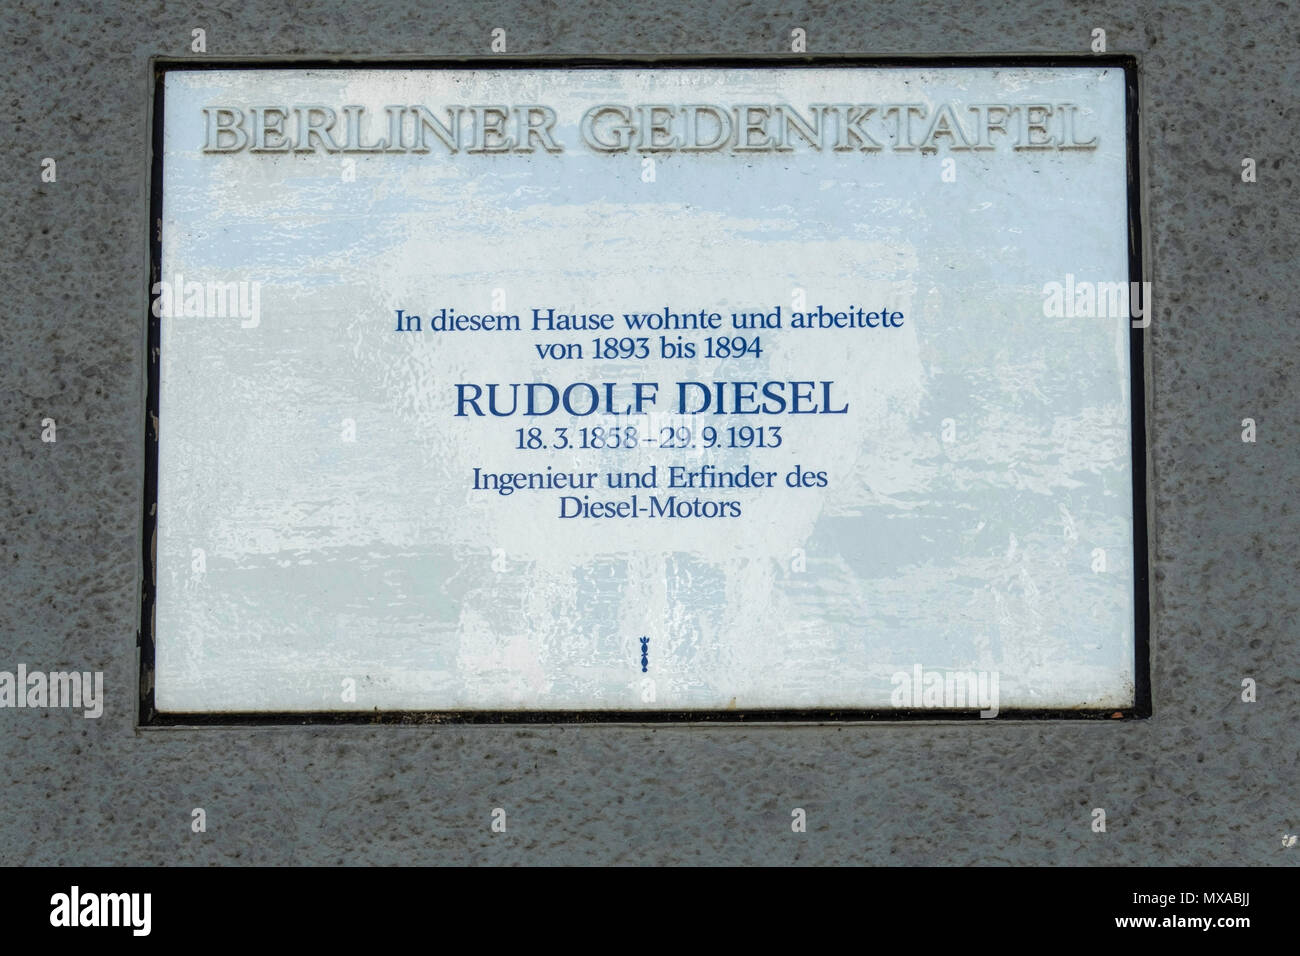 Berlin, Kantstrasse 153. memorial plaque at Entrance to building that was home of Rudolf Diesel, engineer & founder of Diesel Motors - Stock Image